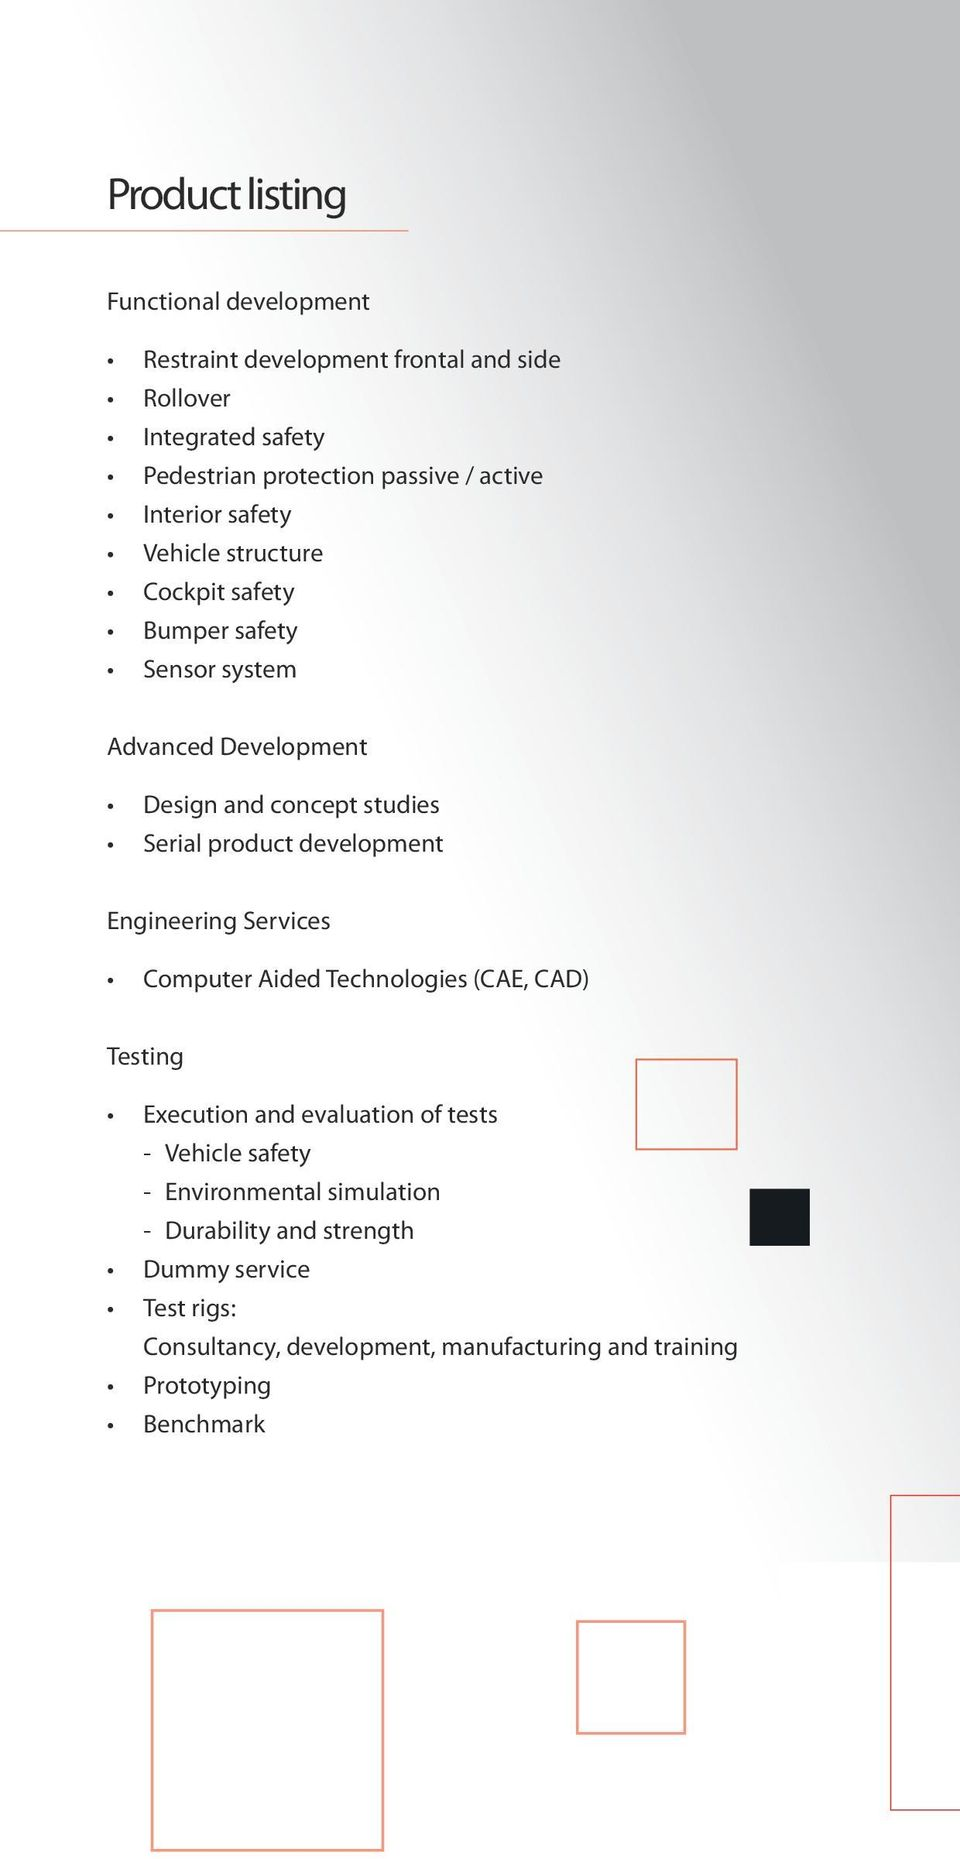 product development Engineering Services Computer Aided Technologies (CAE, CAD) Testing Execution and evaluation of tests - Vehicle safety -